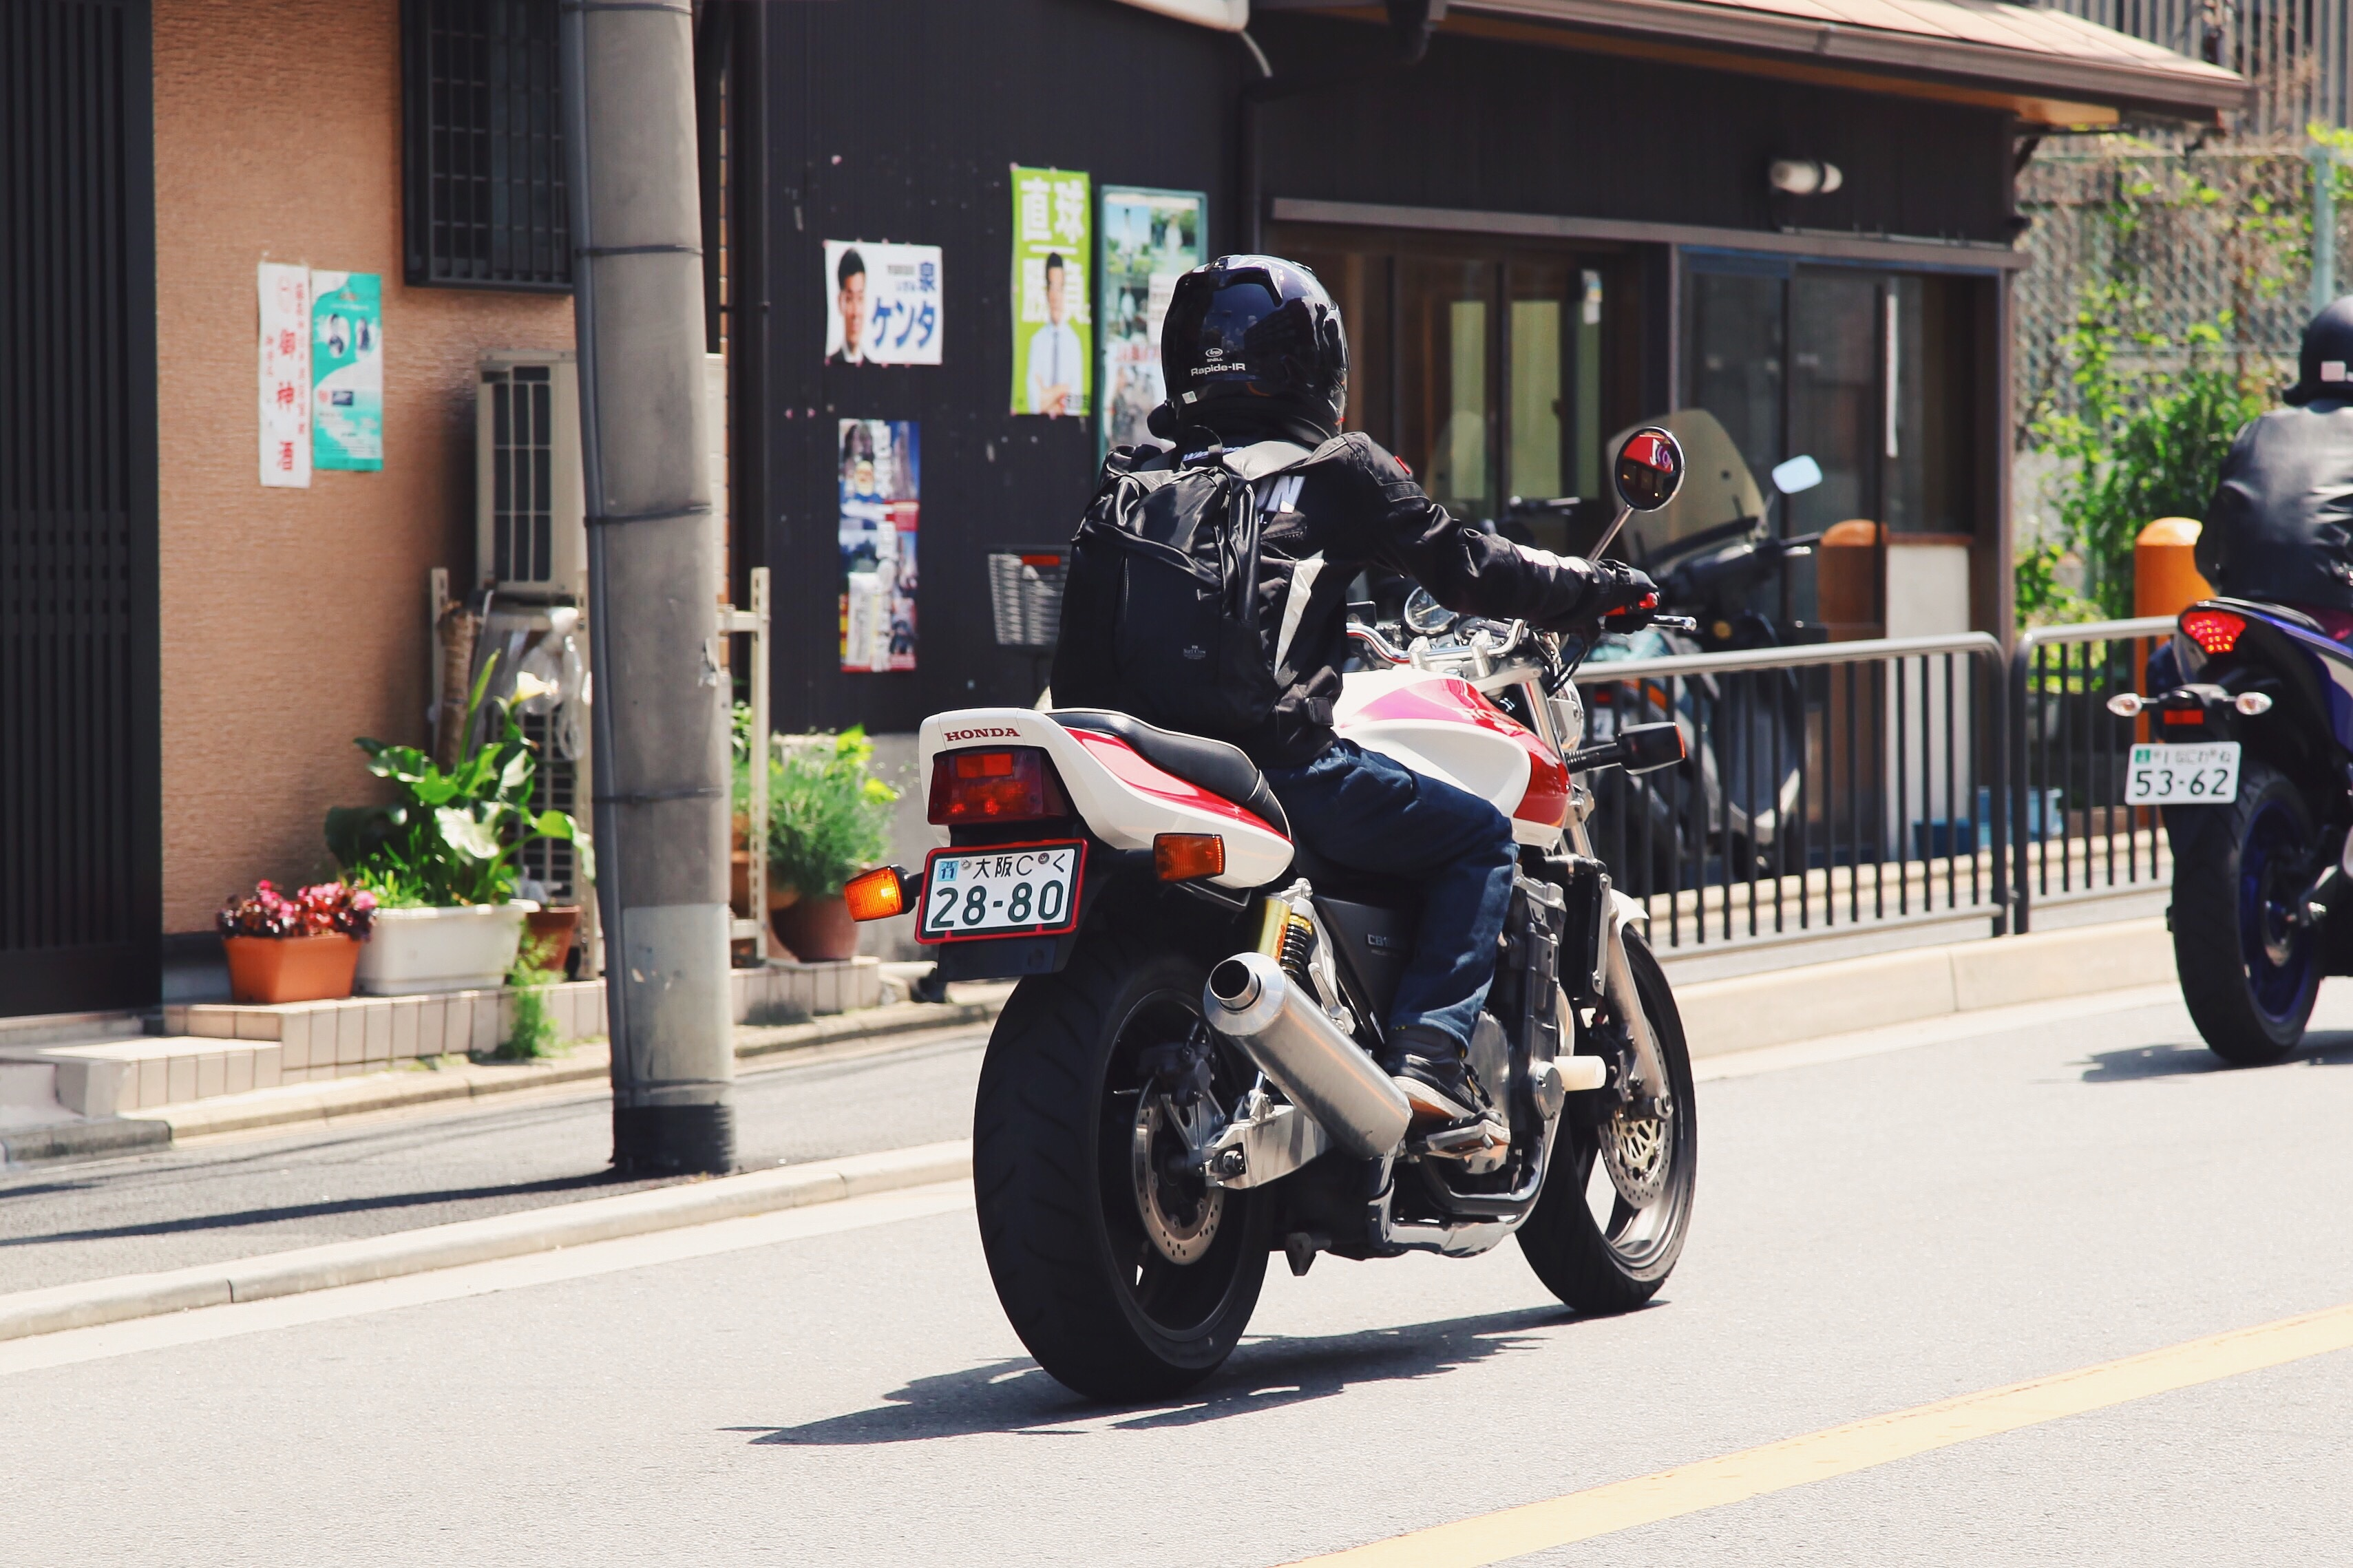 Motorcyclist Prepares for Safe Driving